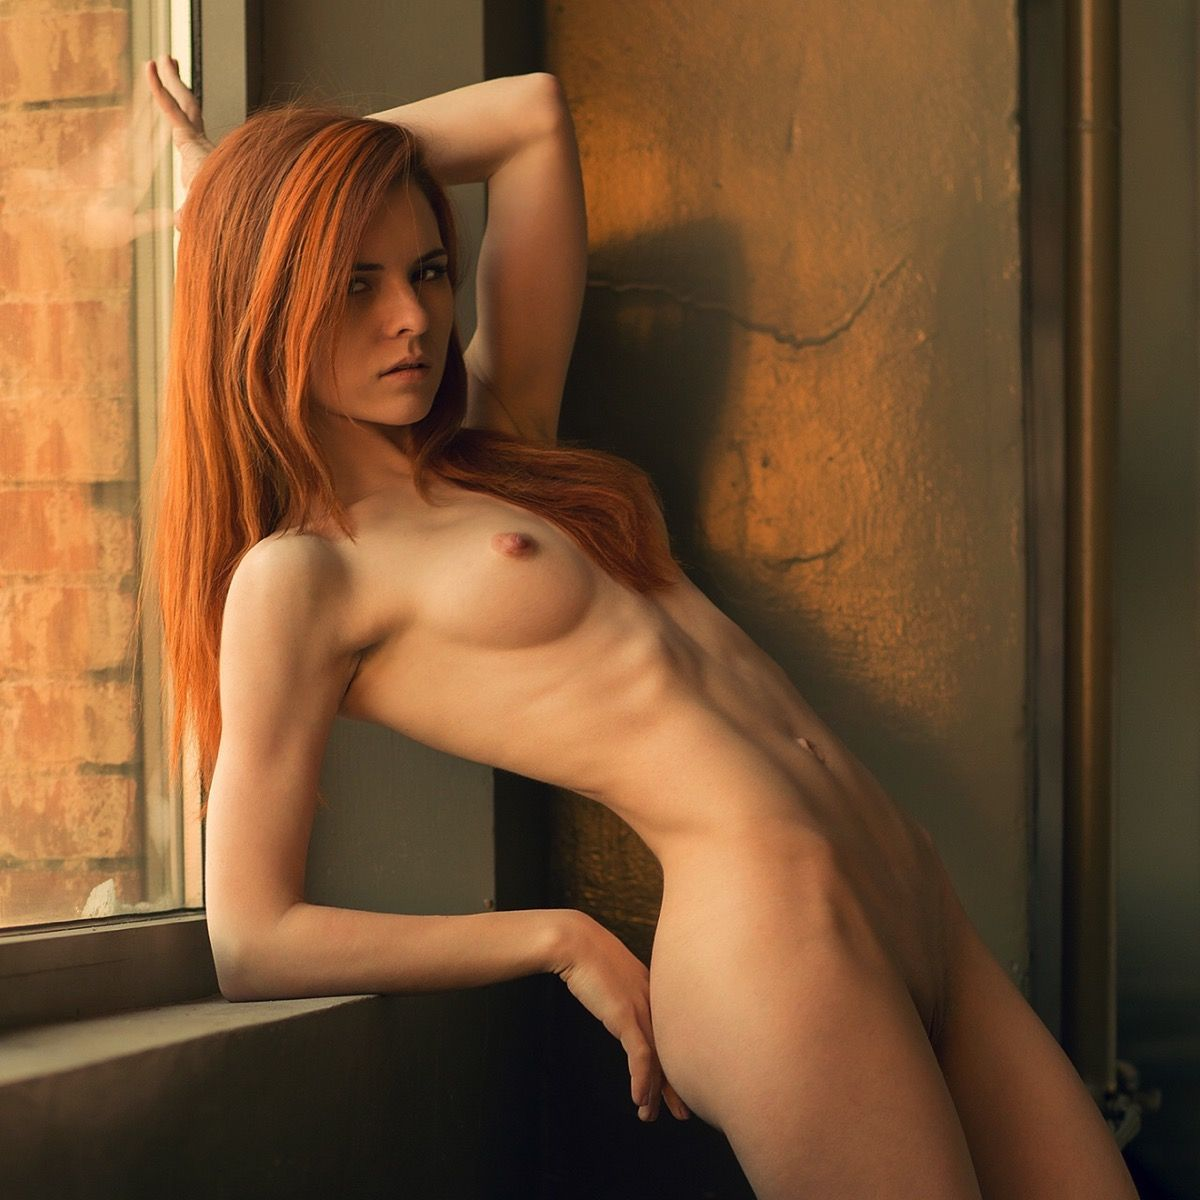 Redhead fit porn pictures, pee tiny barely legal girls